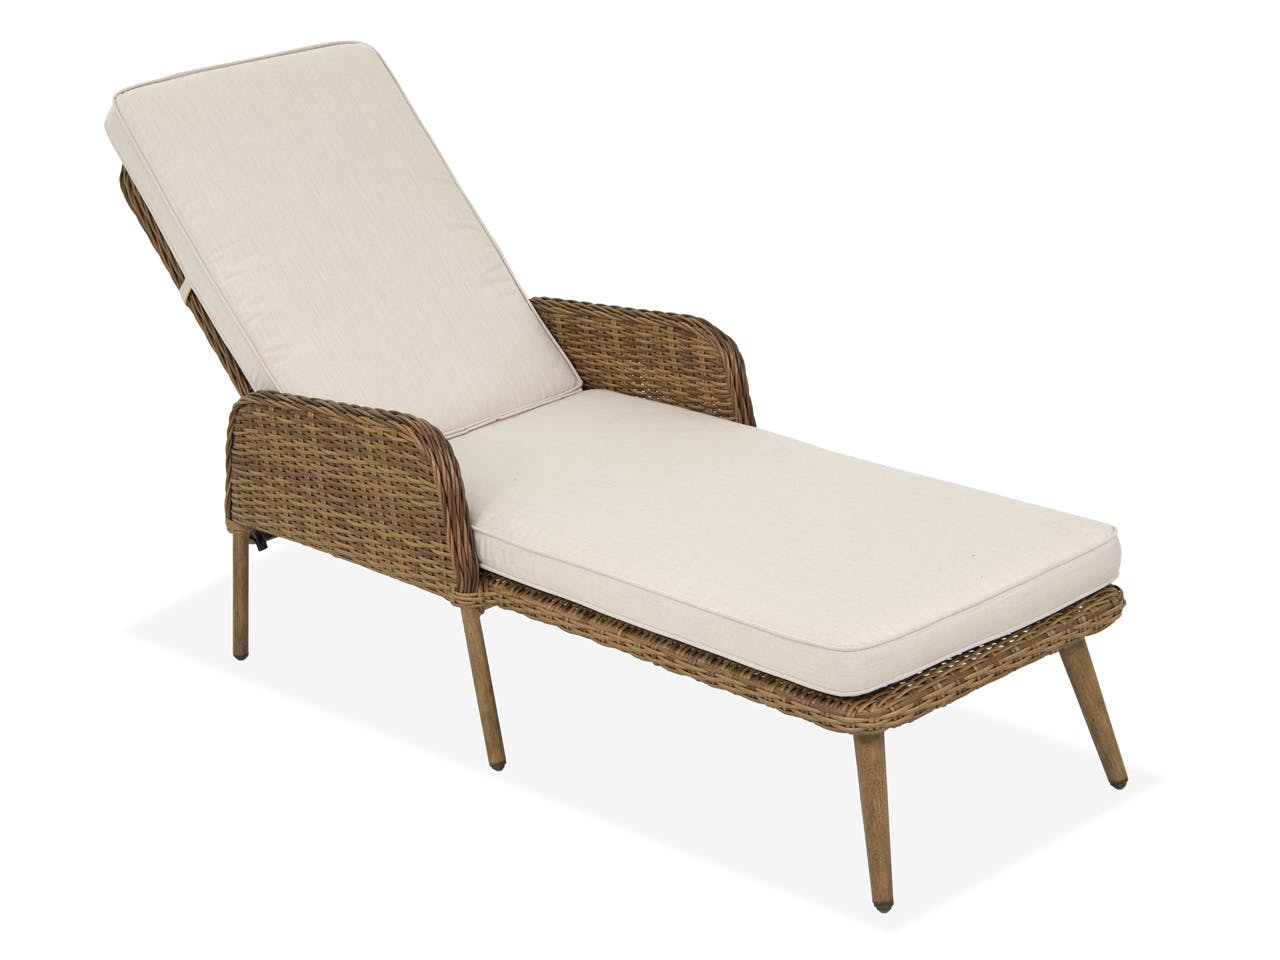 Outdoor/Patio Roma Pecan Aluminum and Outdoor Wicker Cushion Chaise